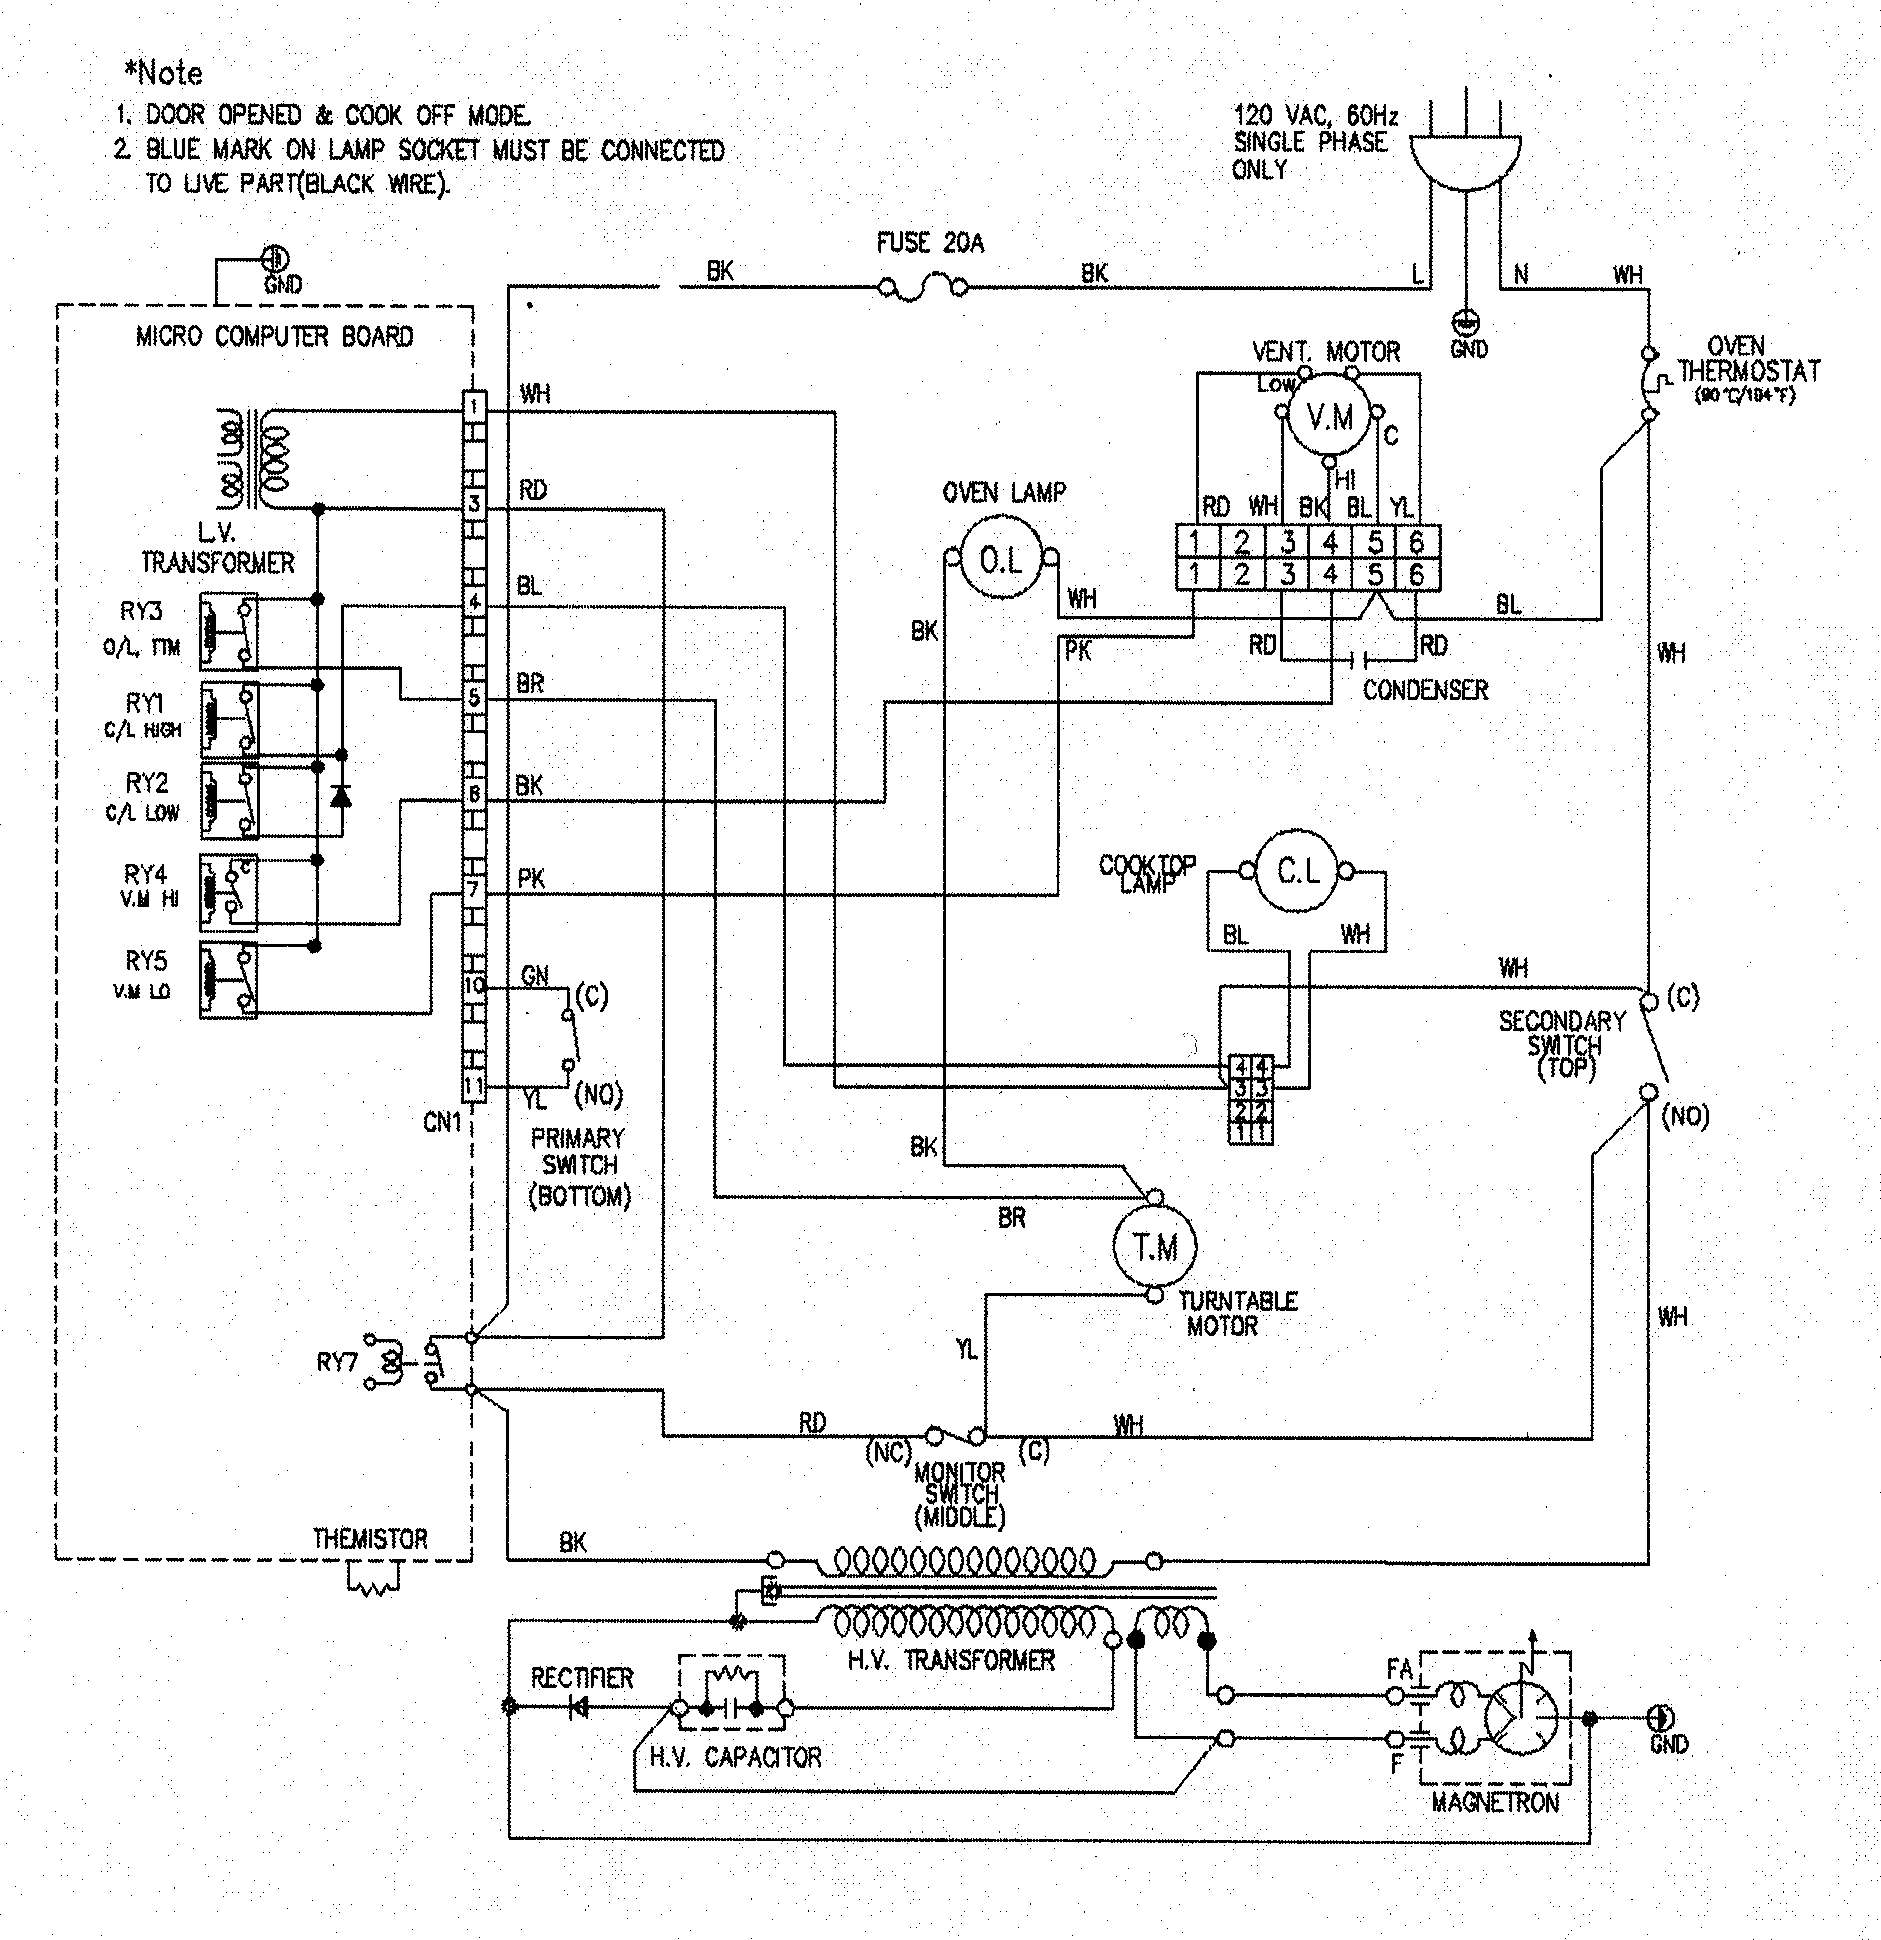 Whirlpool Dryer Schematic Wiring Diagram from i.pinimg.com